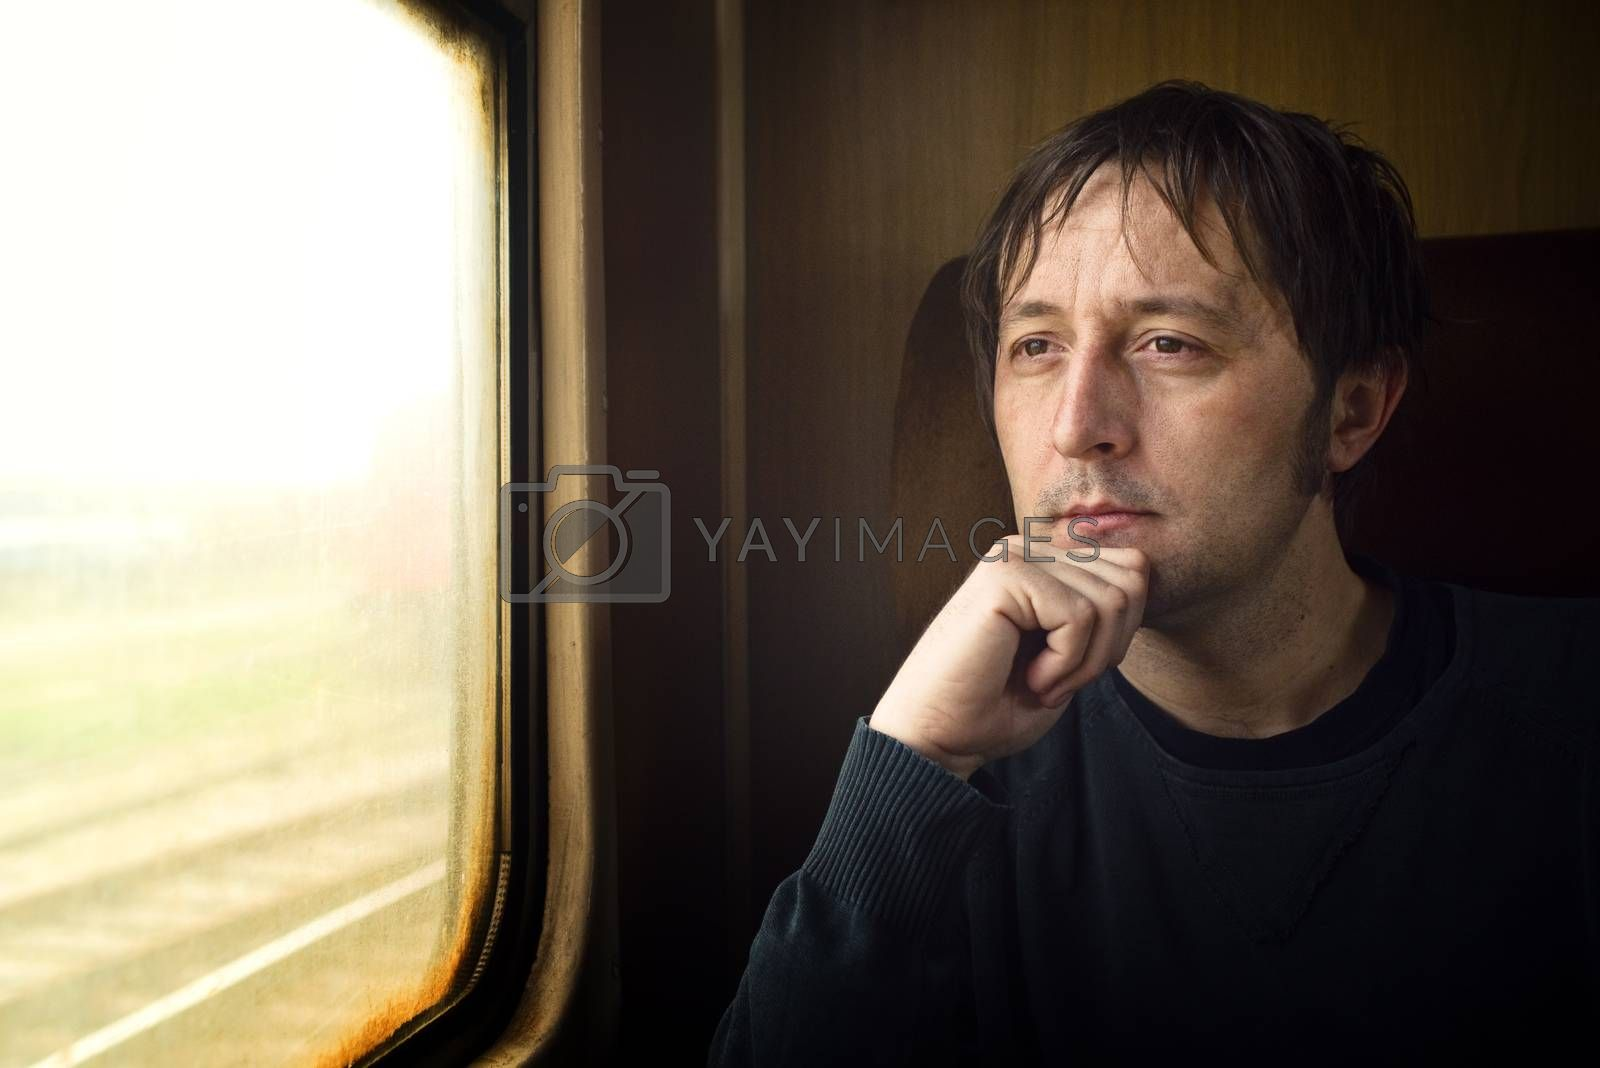 Traveling by train. Man traveling by train, looking through the dirty window.